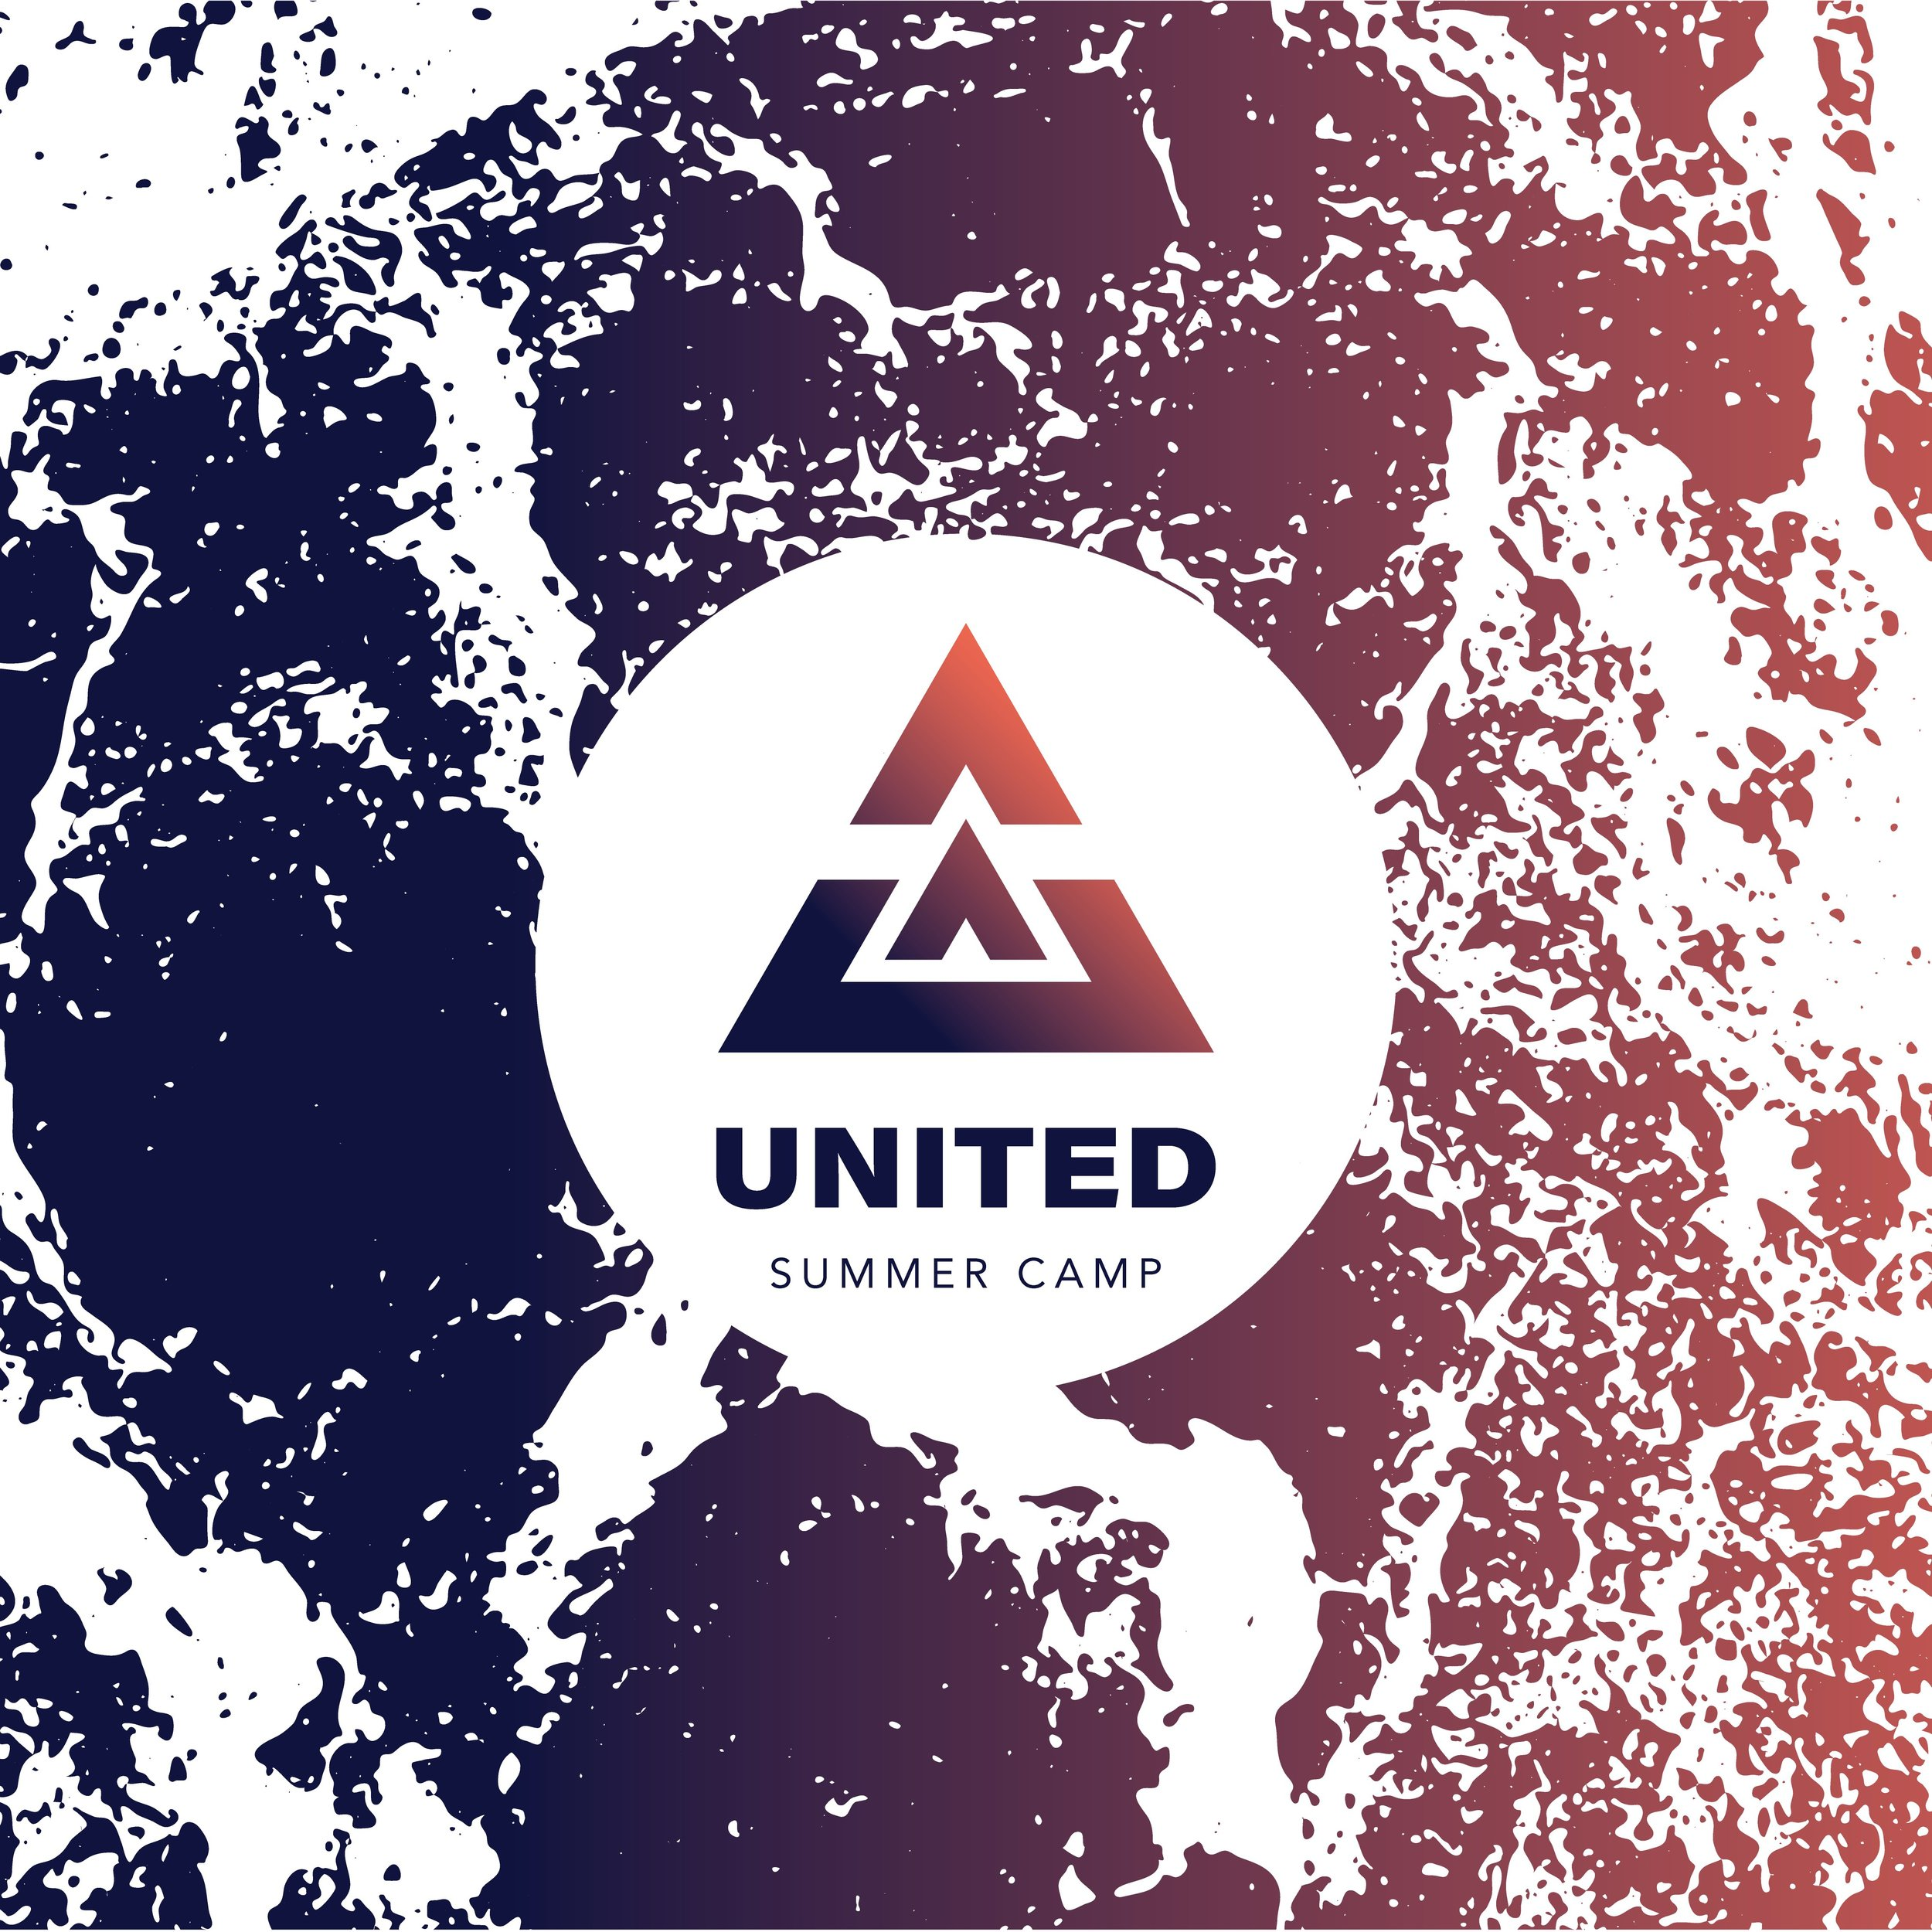 United Summer Camp - United Summer Camp is filled with fun and adventure with the purpose of uniting students to God and in community with each other. This year it will be at Camp Cedar Springs in Naches, August 12-16. Click here for more information and to get signed up!